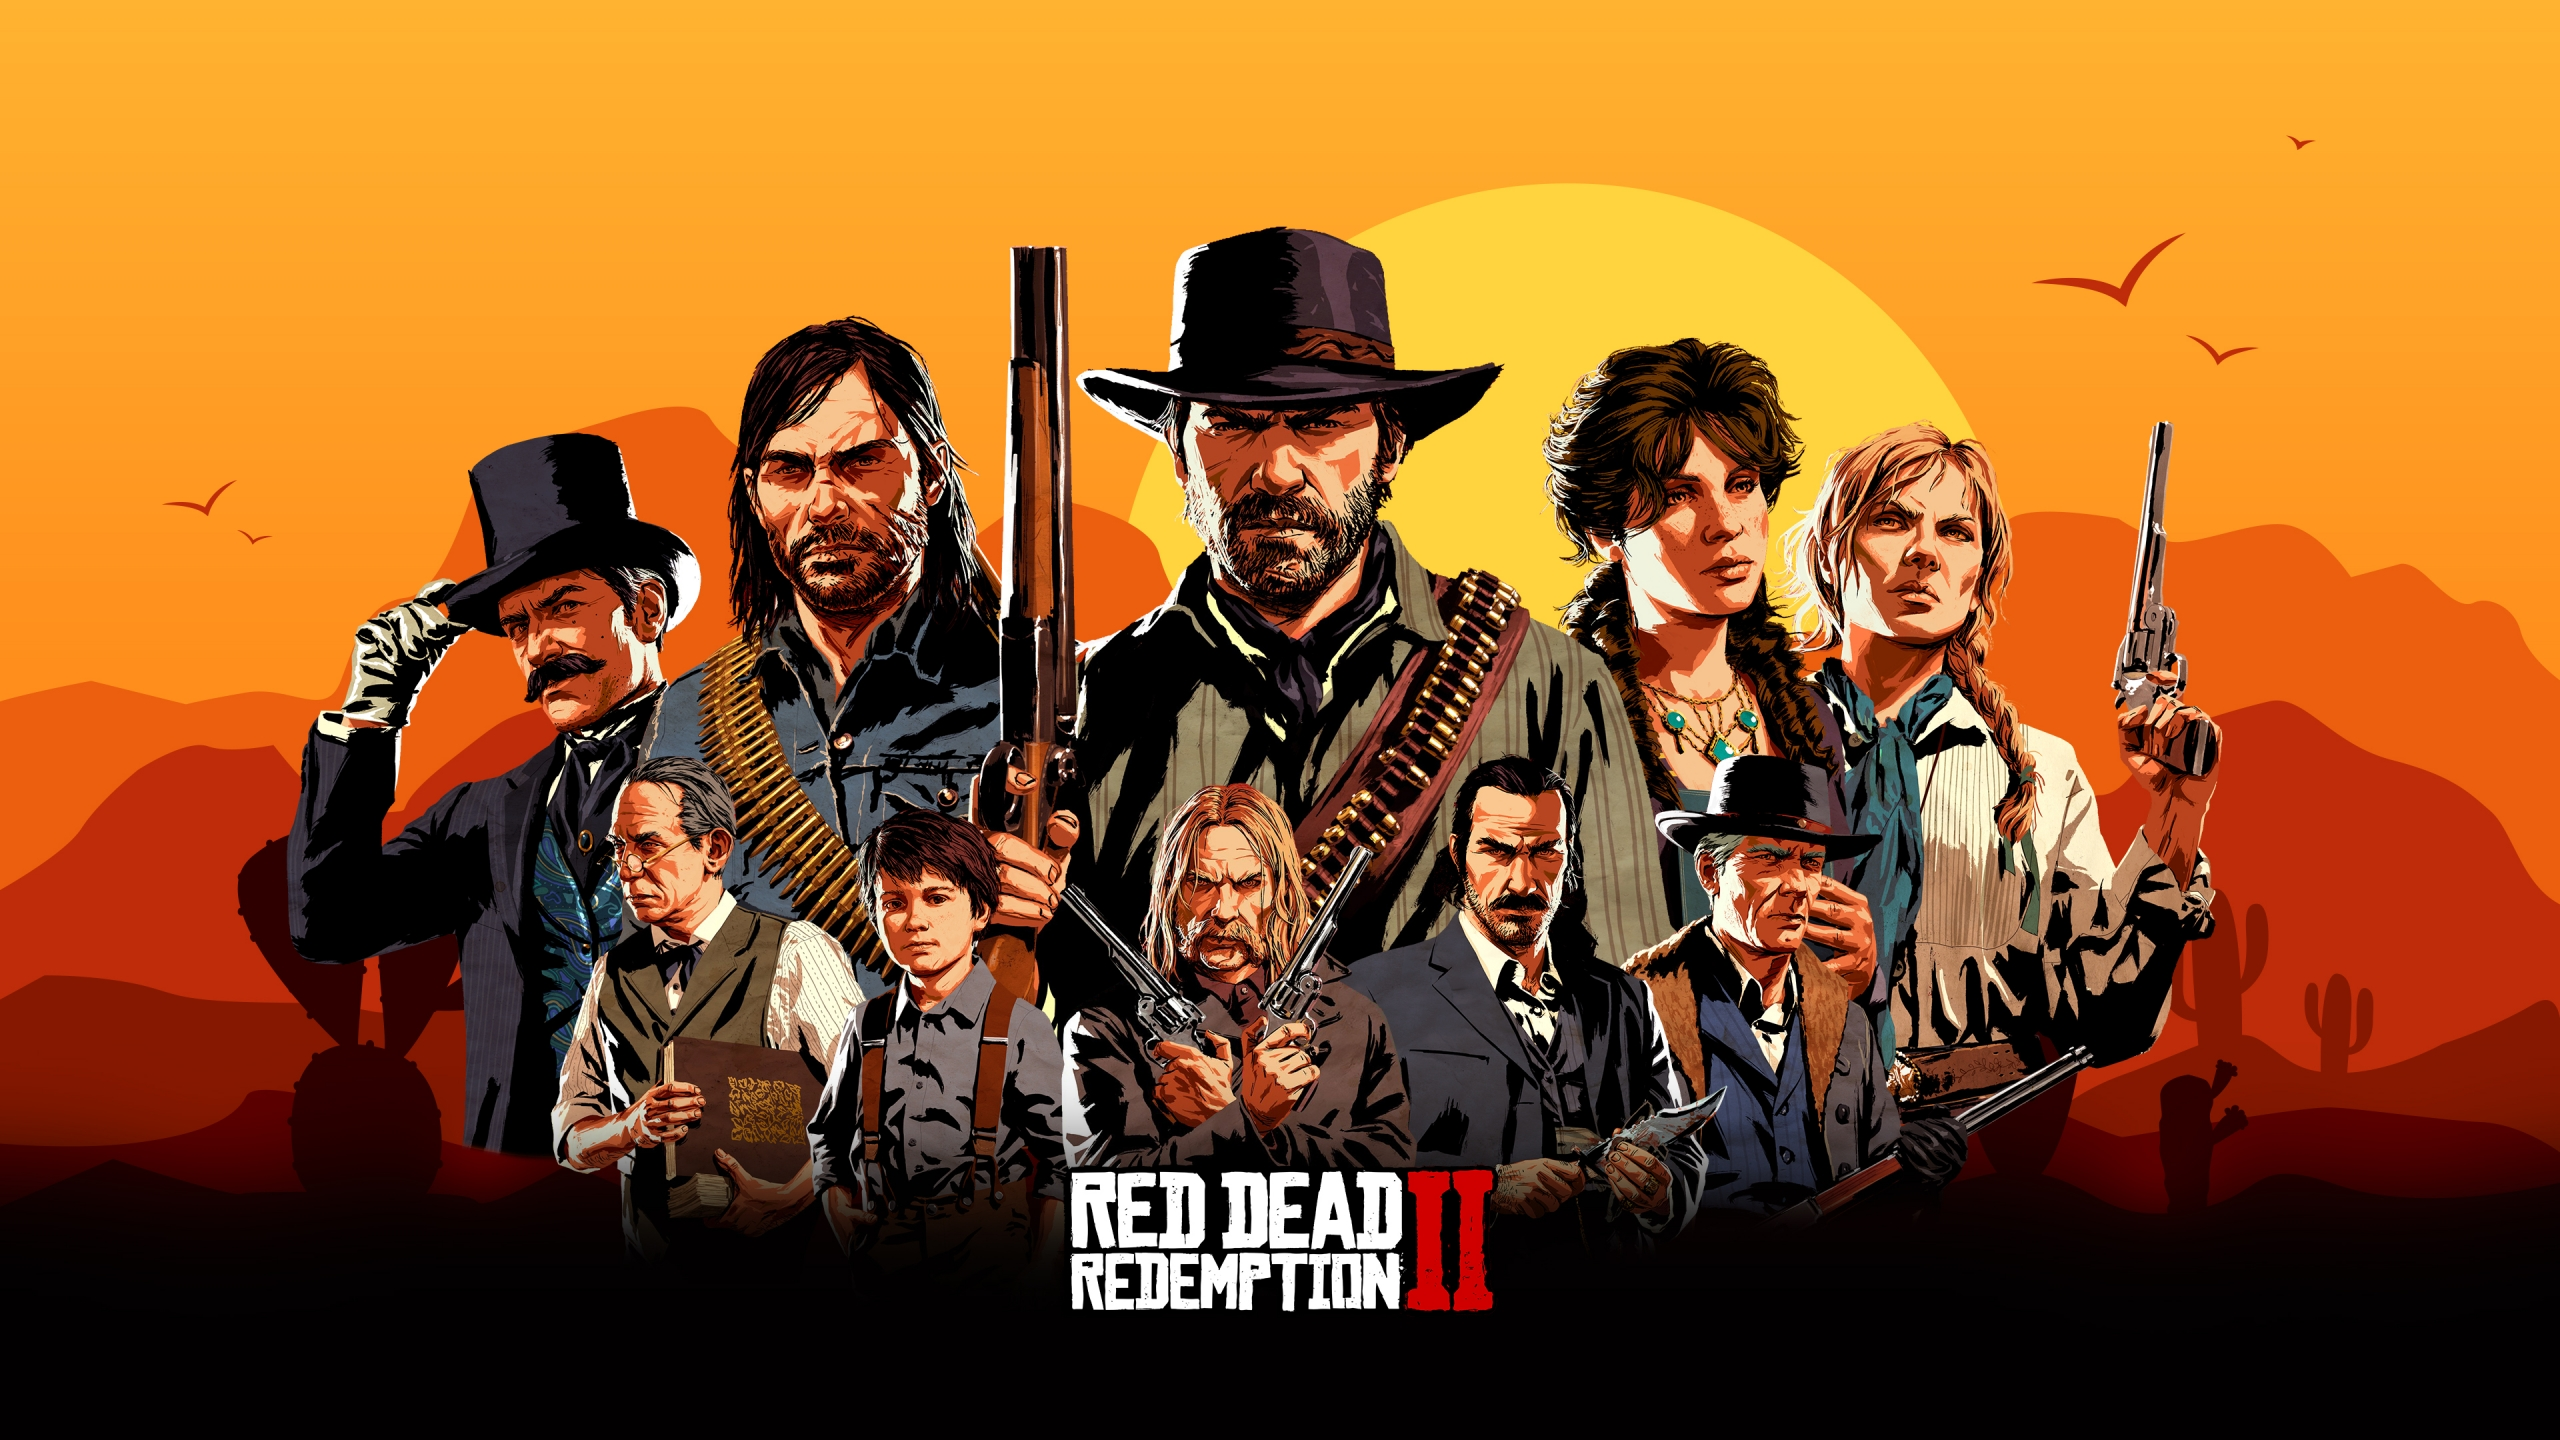 Red Dead Redemption 2 Portada Characters Wallpaper 4k Ultra